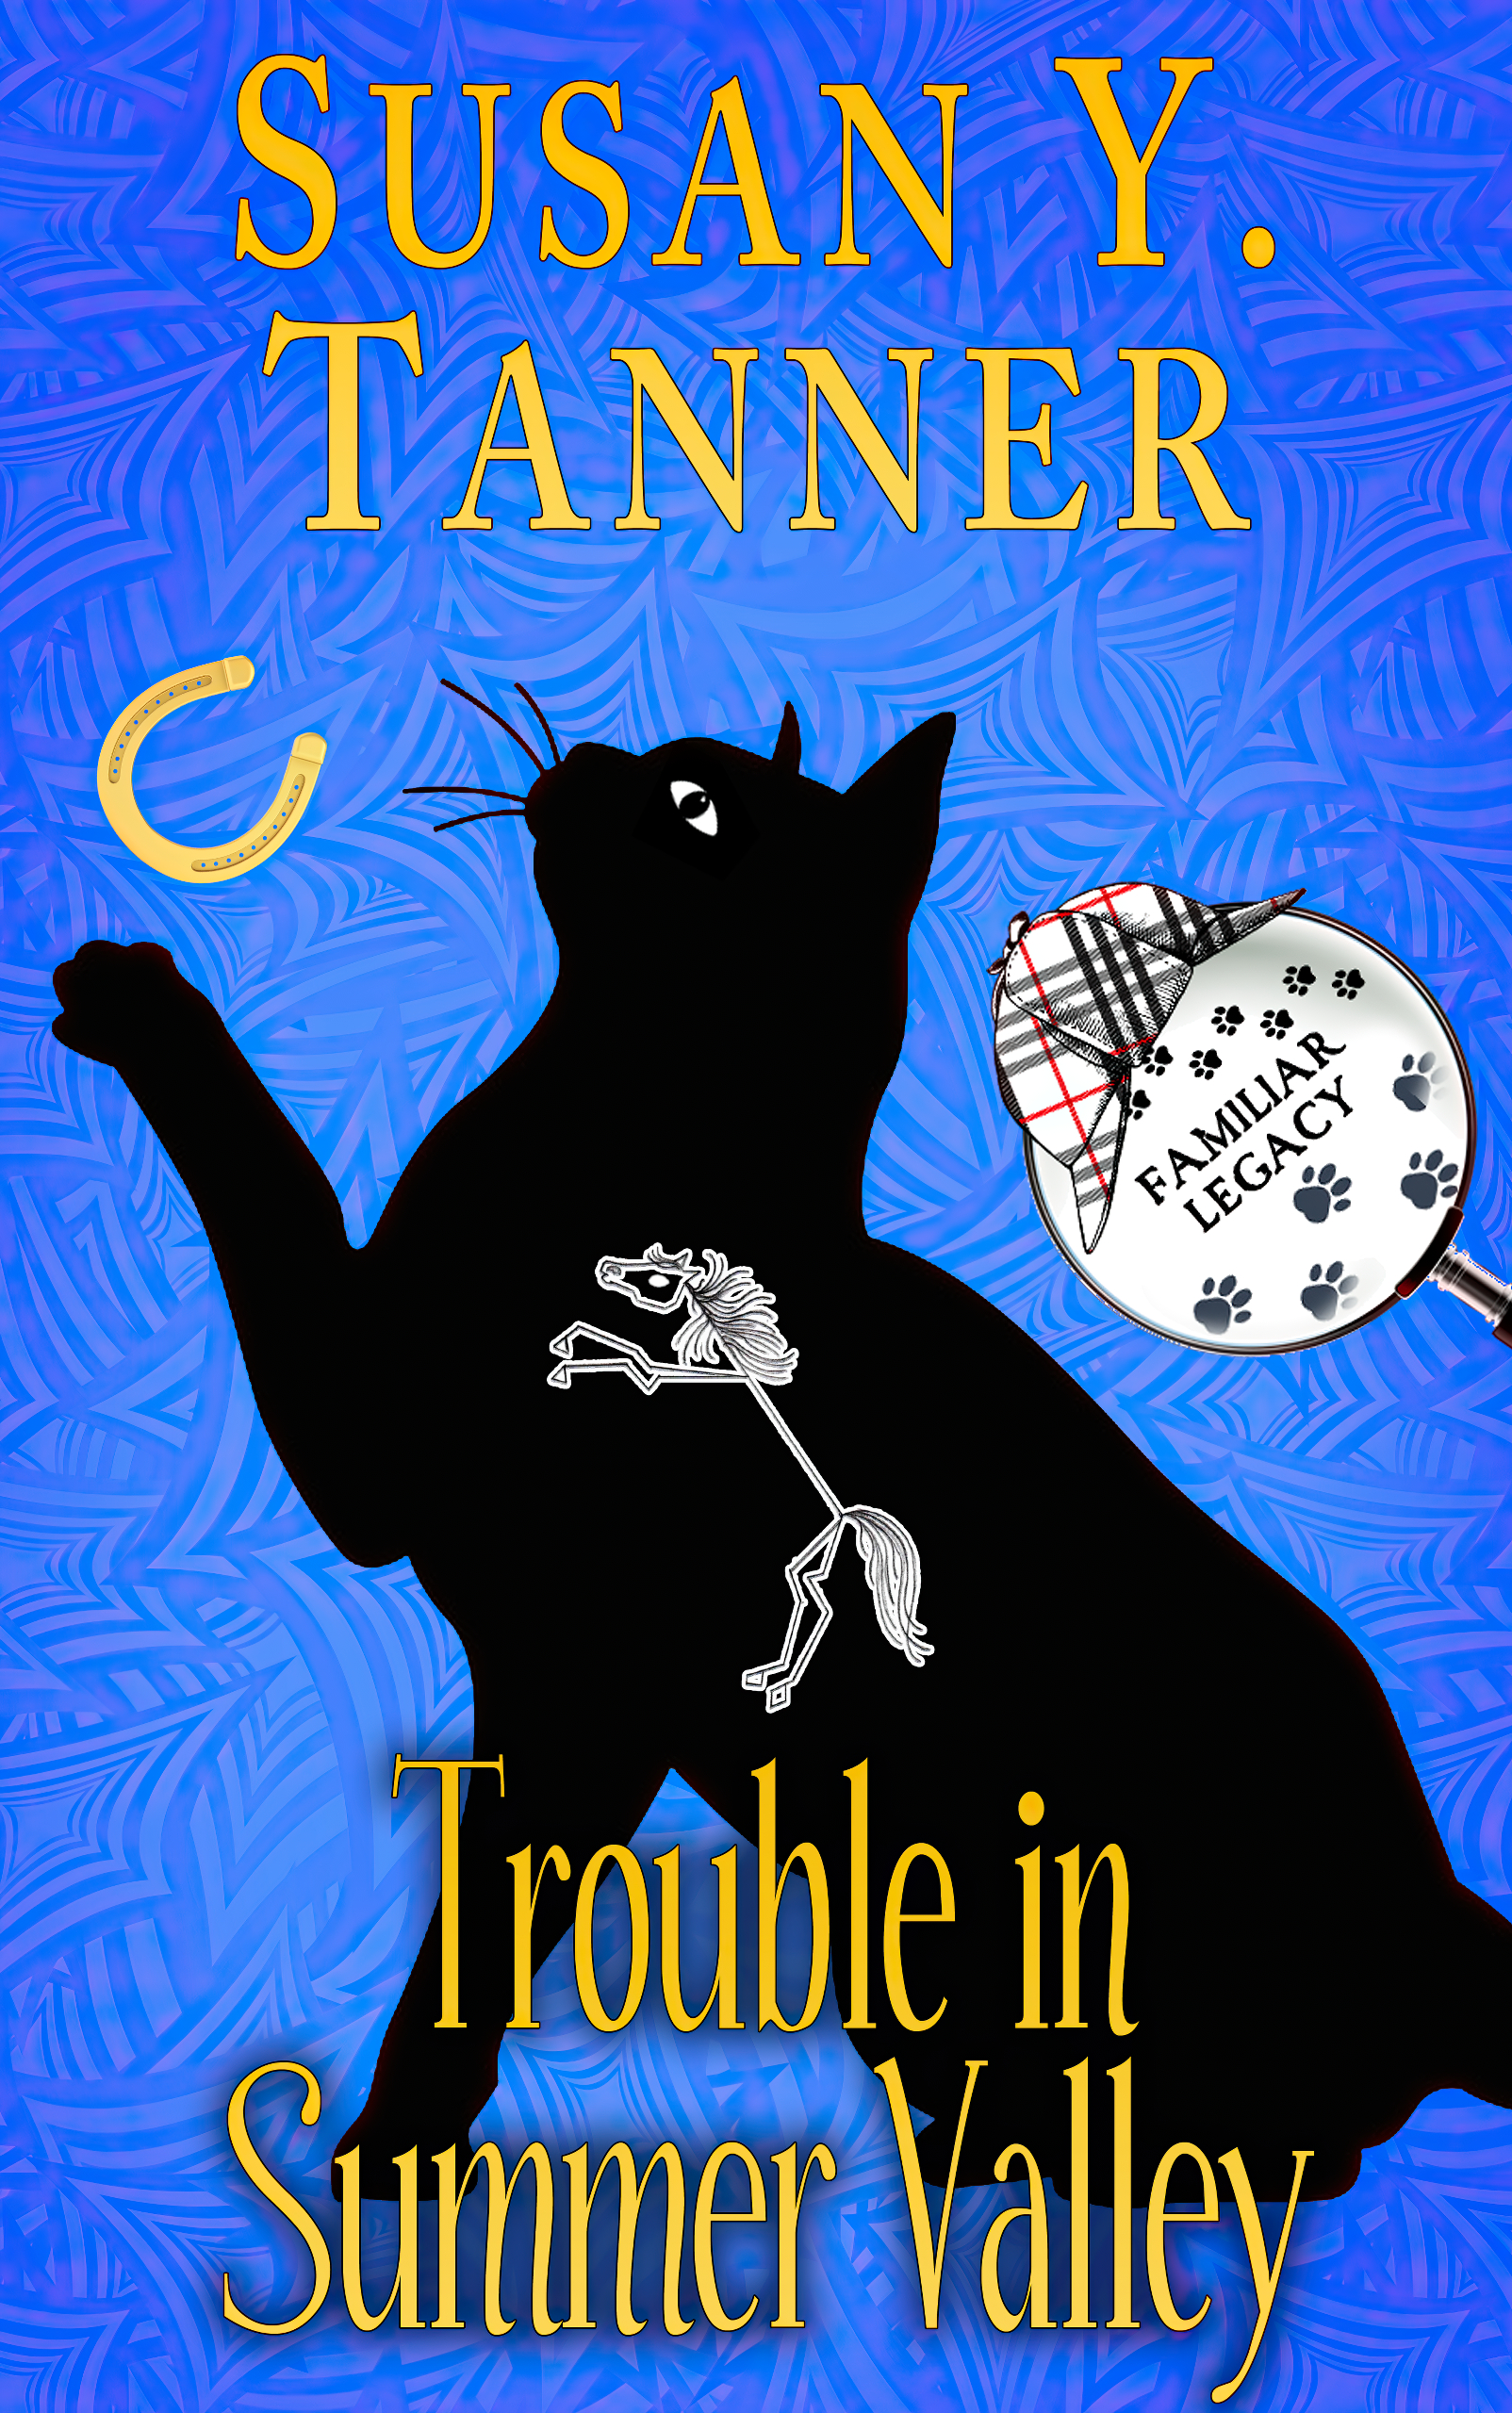 Cover for Trouble in Summer Valley by Susan Y. Tanner, Book 4 of the Familiar Legacy series.